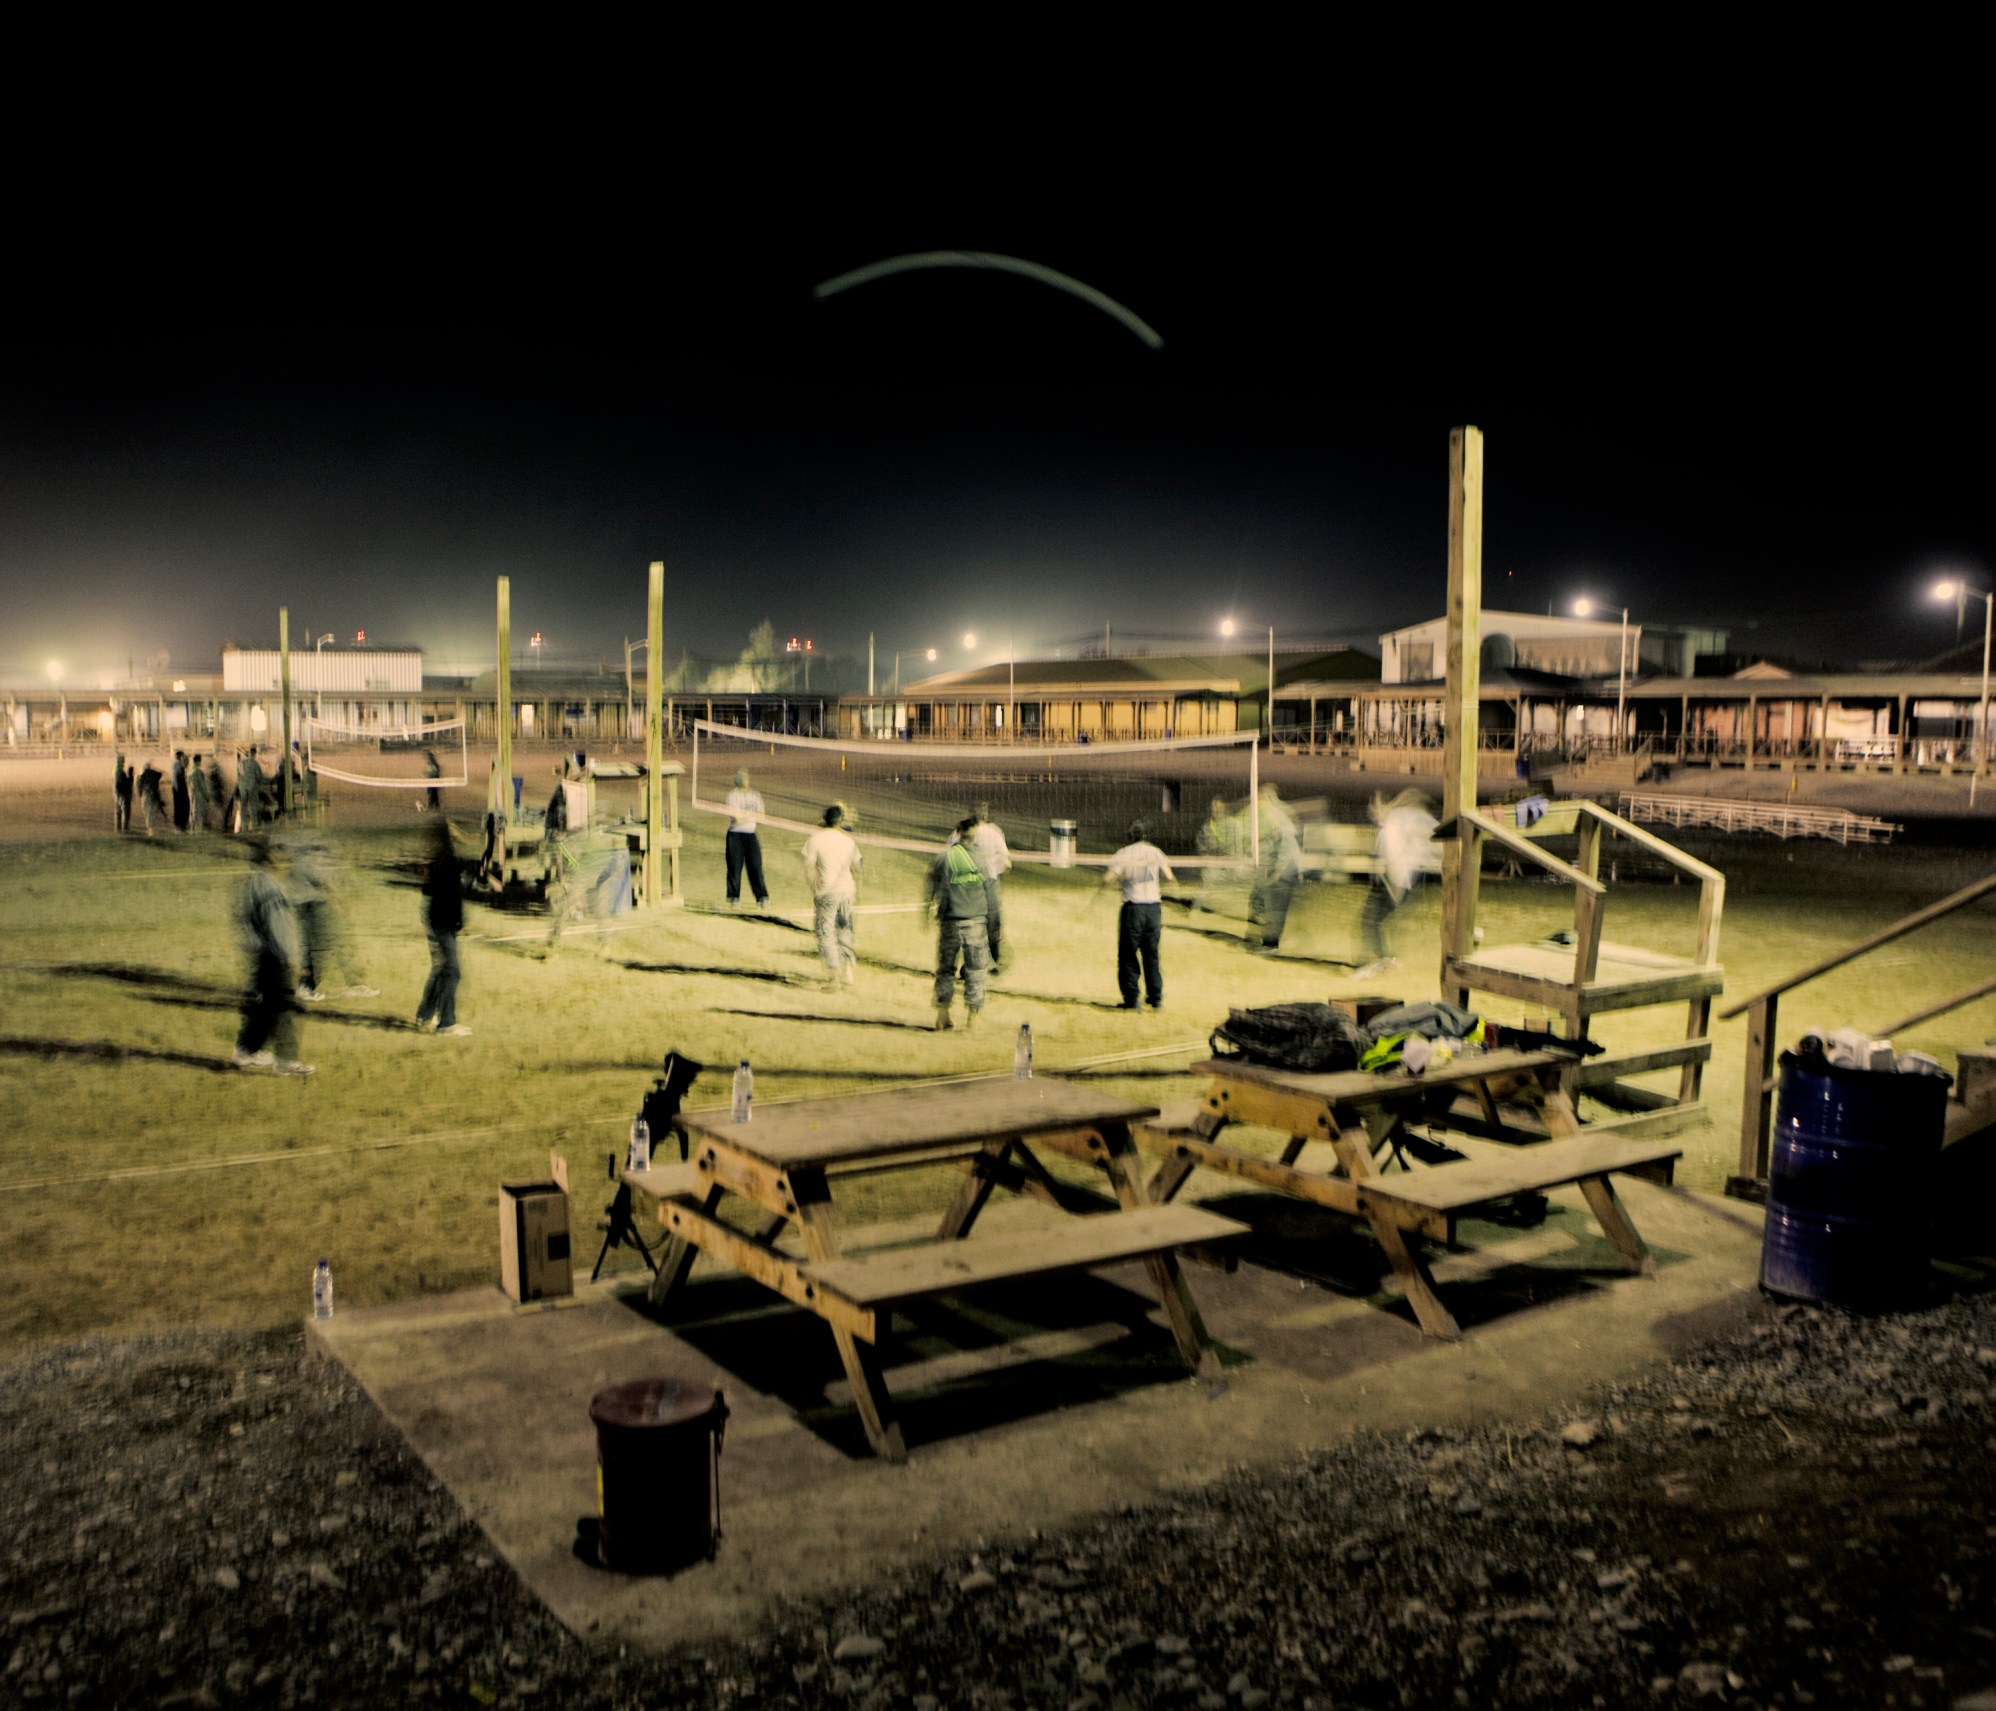 Soldiers play volleyball at night in Camp Bastion. In June 2011, President Obama announced his plan to begin the withdrawal of US troops from Afghanistan, but there is currently no end date for the war in the troubled country. Helmand is the largest province in Afghanistan, and the heart of the war against terror. Commanders on the ground have described the situation as the most brutal conflict the British Army has been involved in since the Korean War. Much of the fighting between NATO and Taliban forces is taking place in this province and Helmand is a true Taliban stronghold. The Helmand River flows through the mainly desert region. With these images I am trying to show a softer side to this troubled area of Afghanistan.